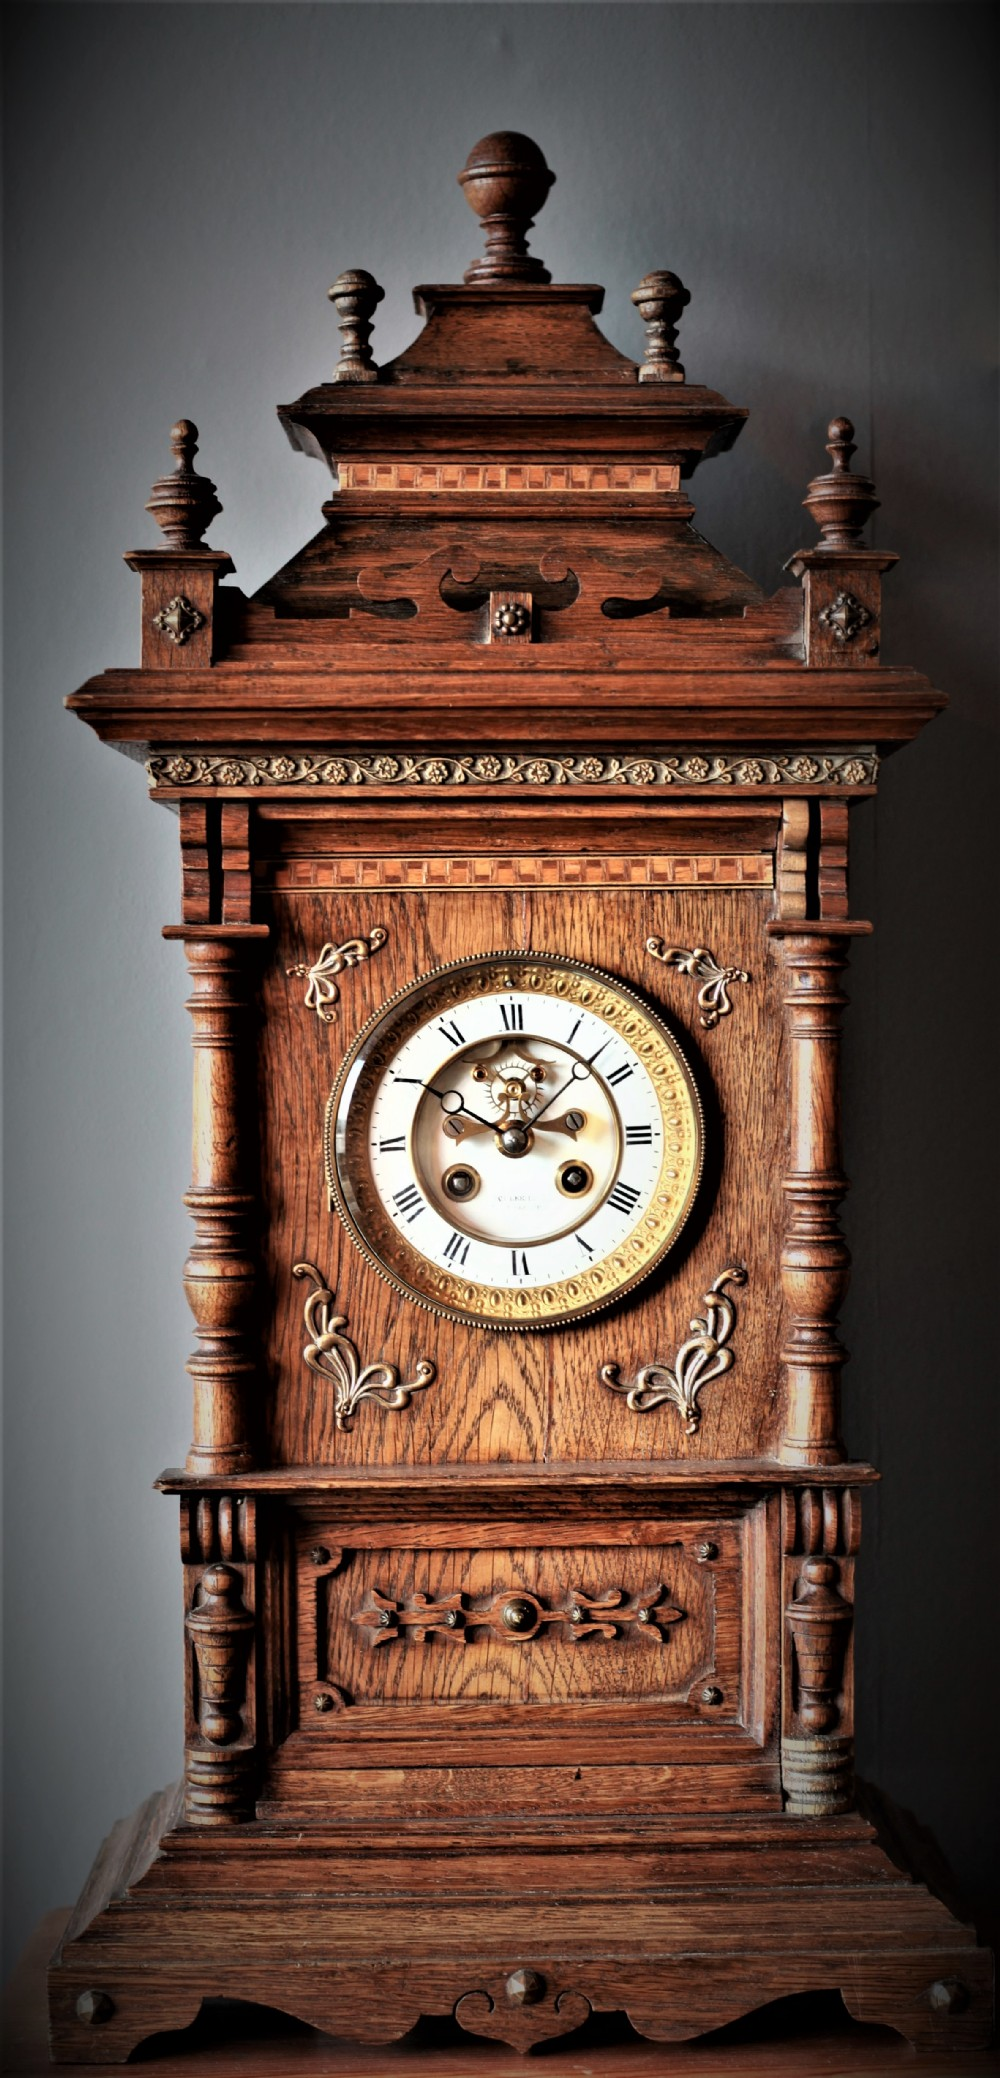 stunning 19th century french mantle clock with visible escapement